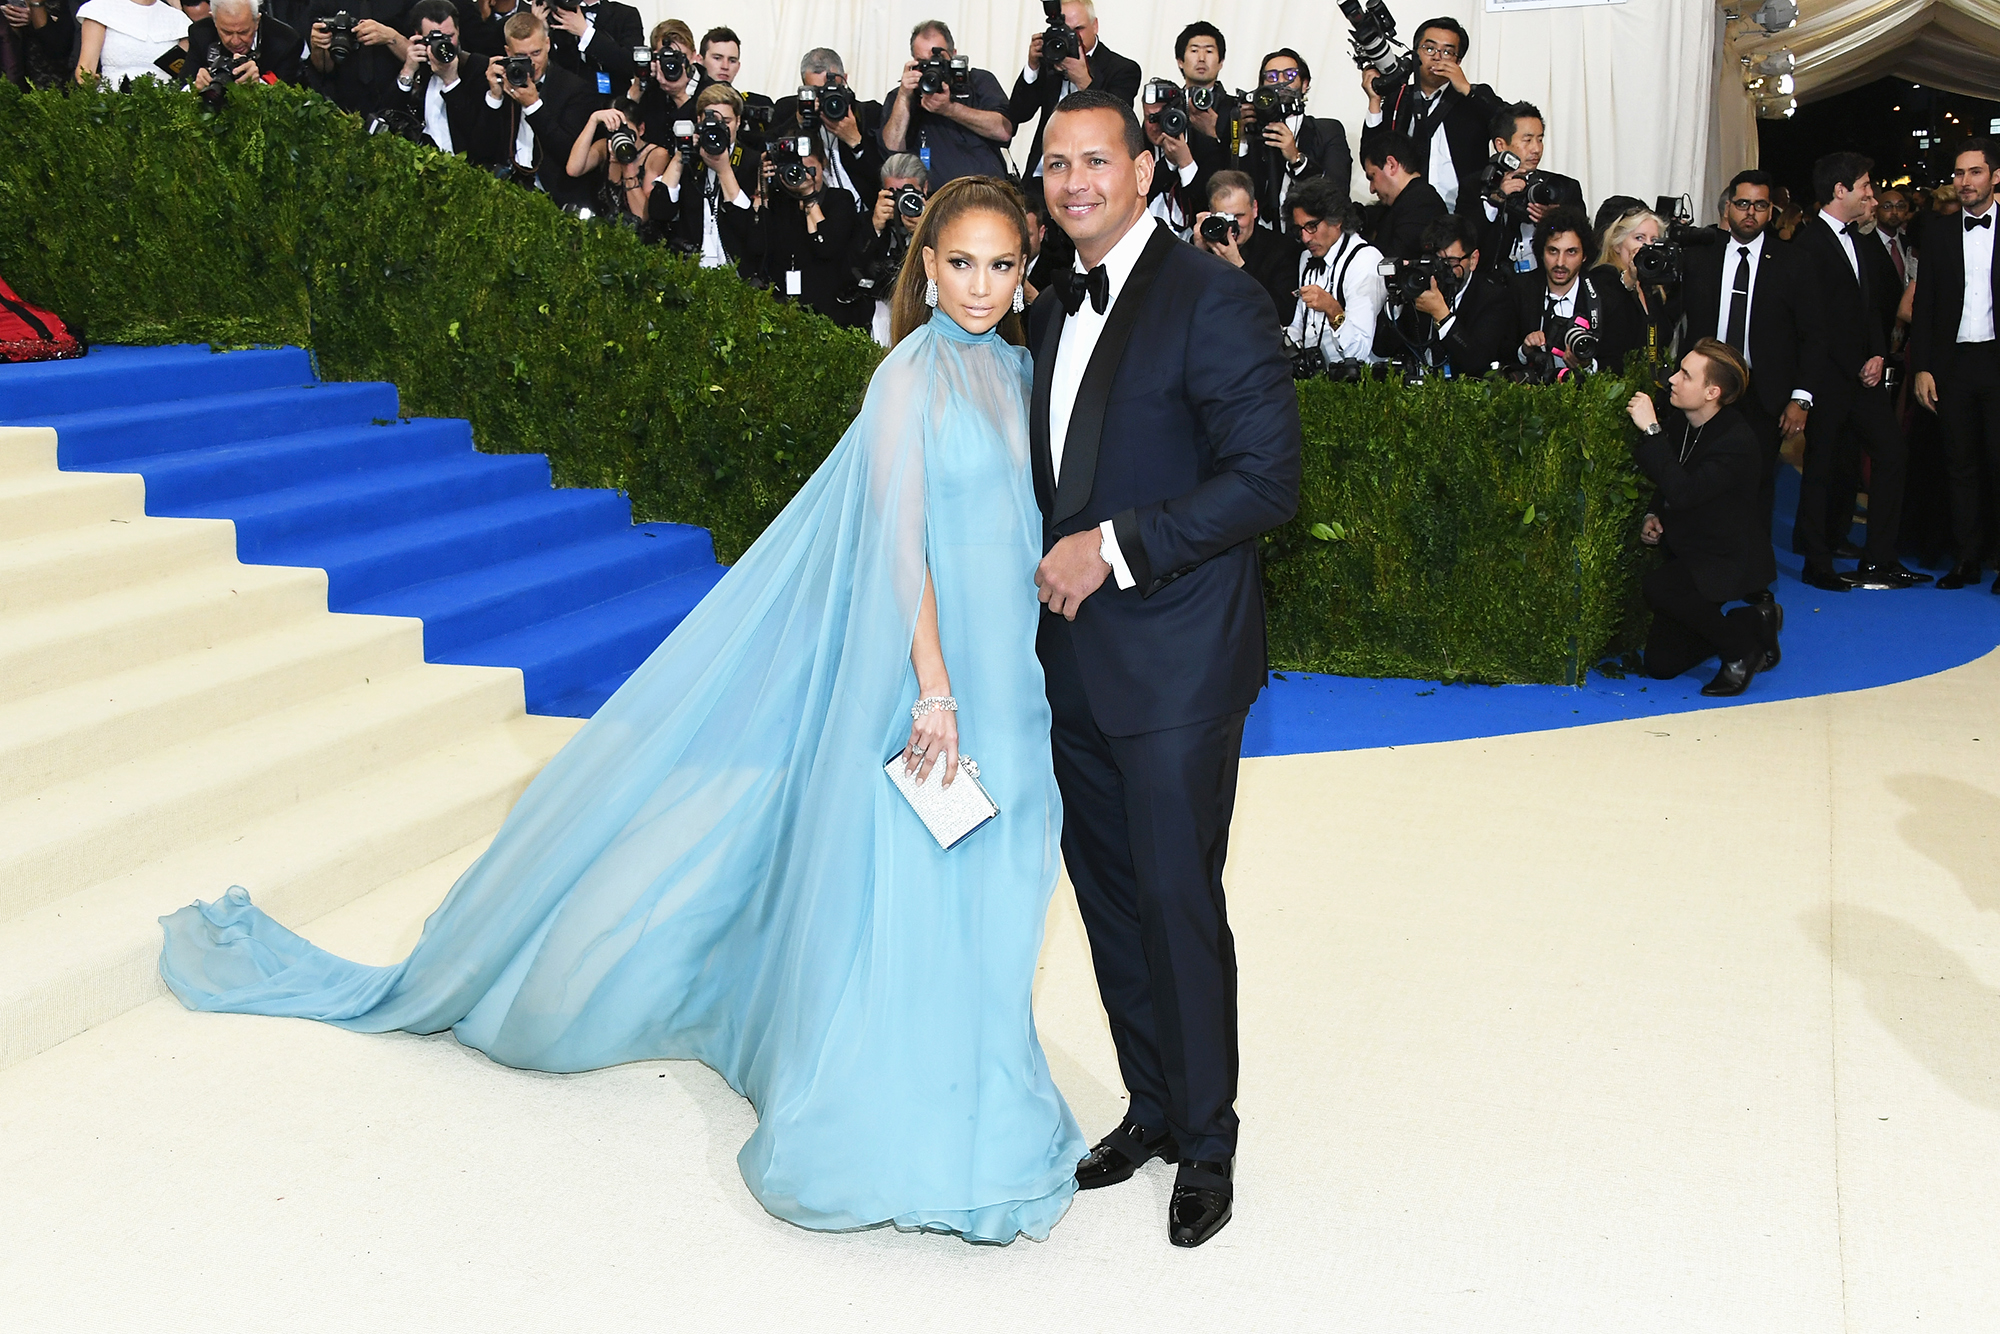 Jennifer Lopez and Alex Rodriguez attend The Metropolitan Museum of Art's Costume Institute benefit gala celebrating the opening of the Rei Kawakubo/Comme des Garçons: Art of the In-Between exhibition in New York City, on May 1, 2017.